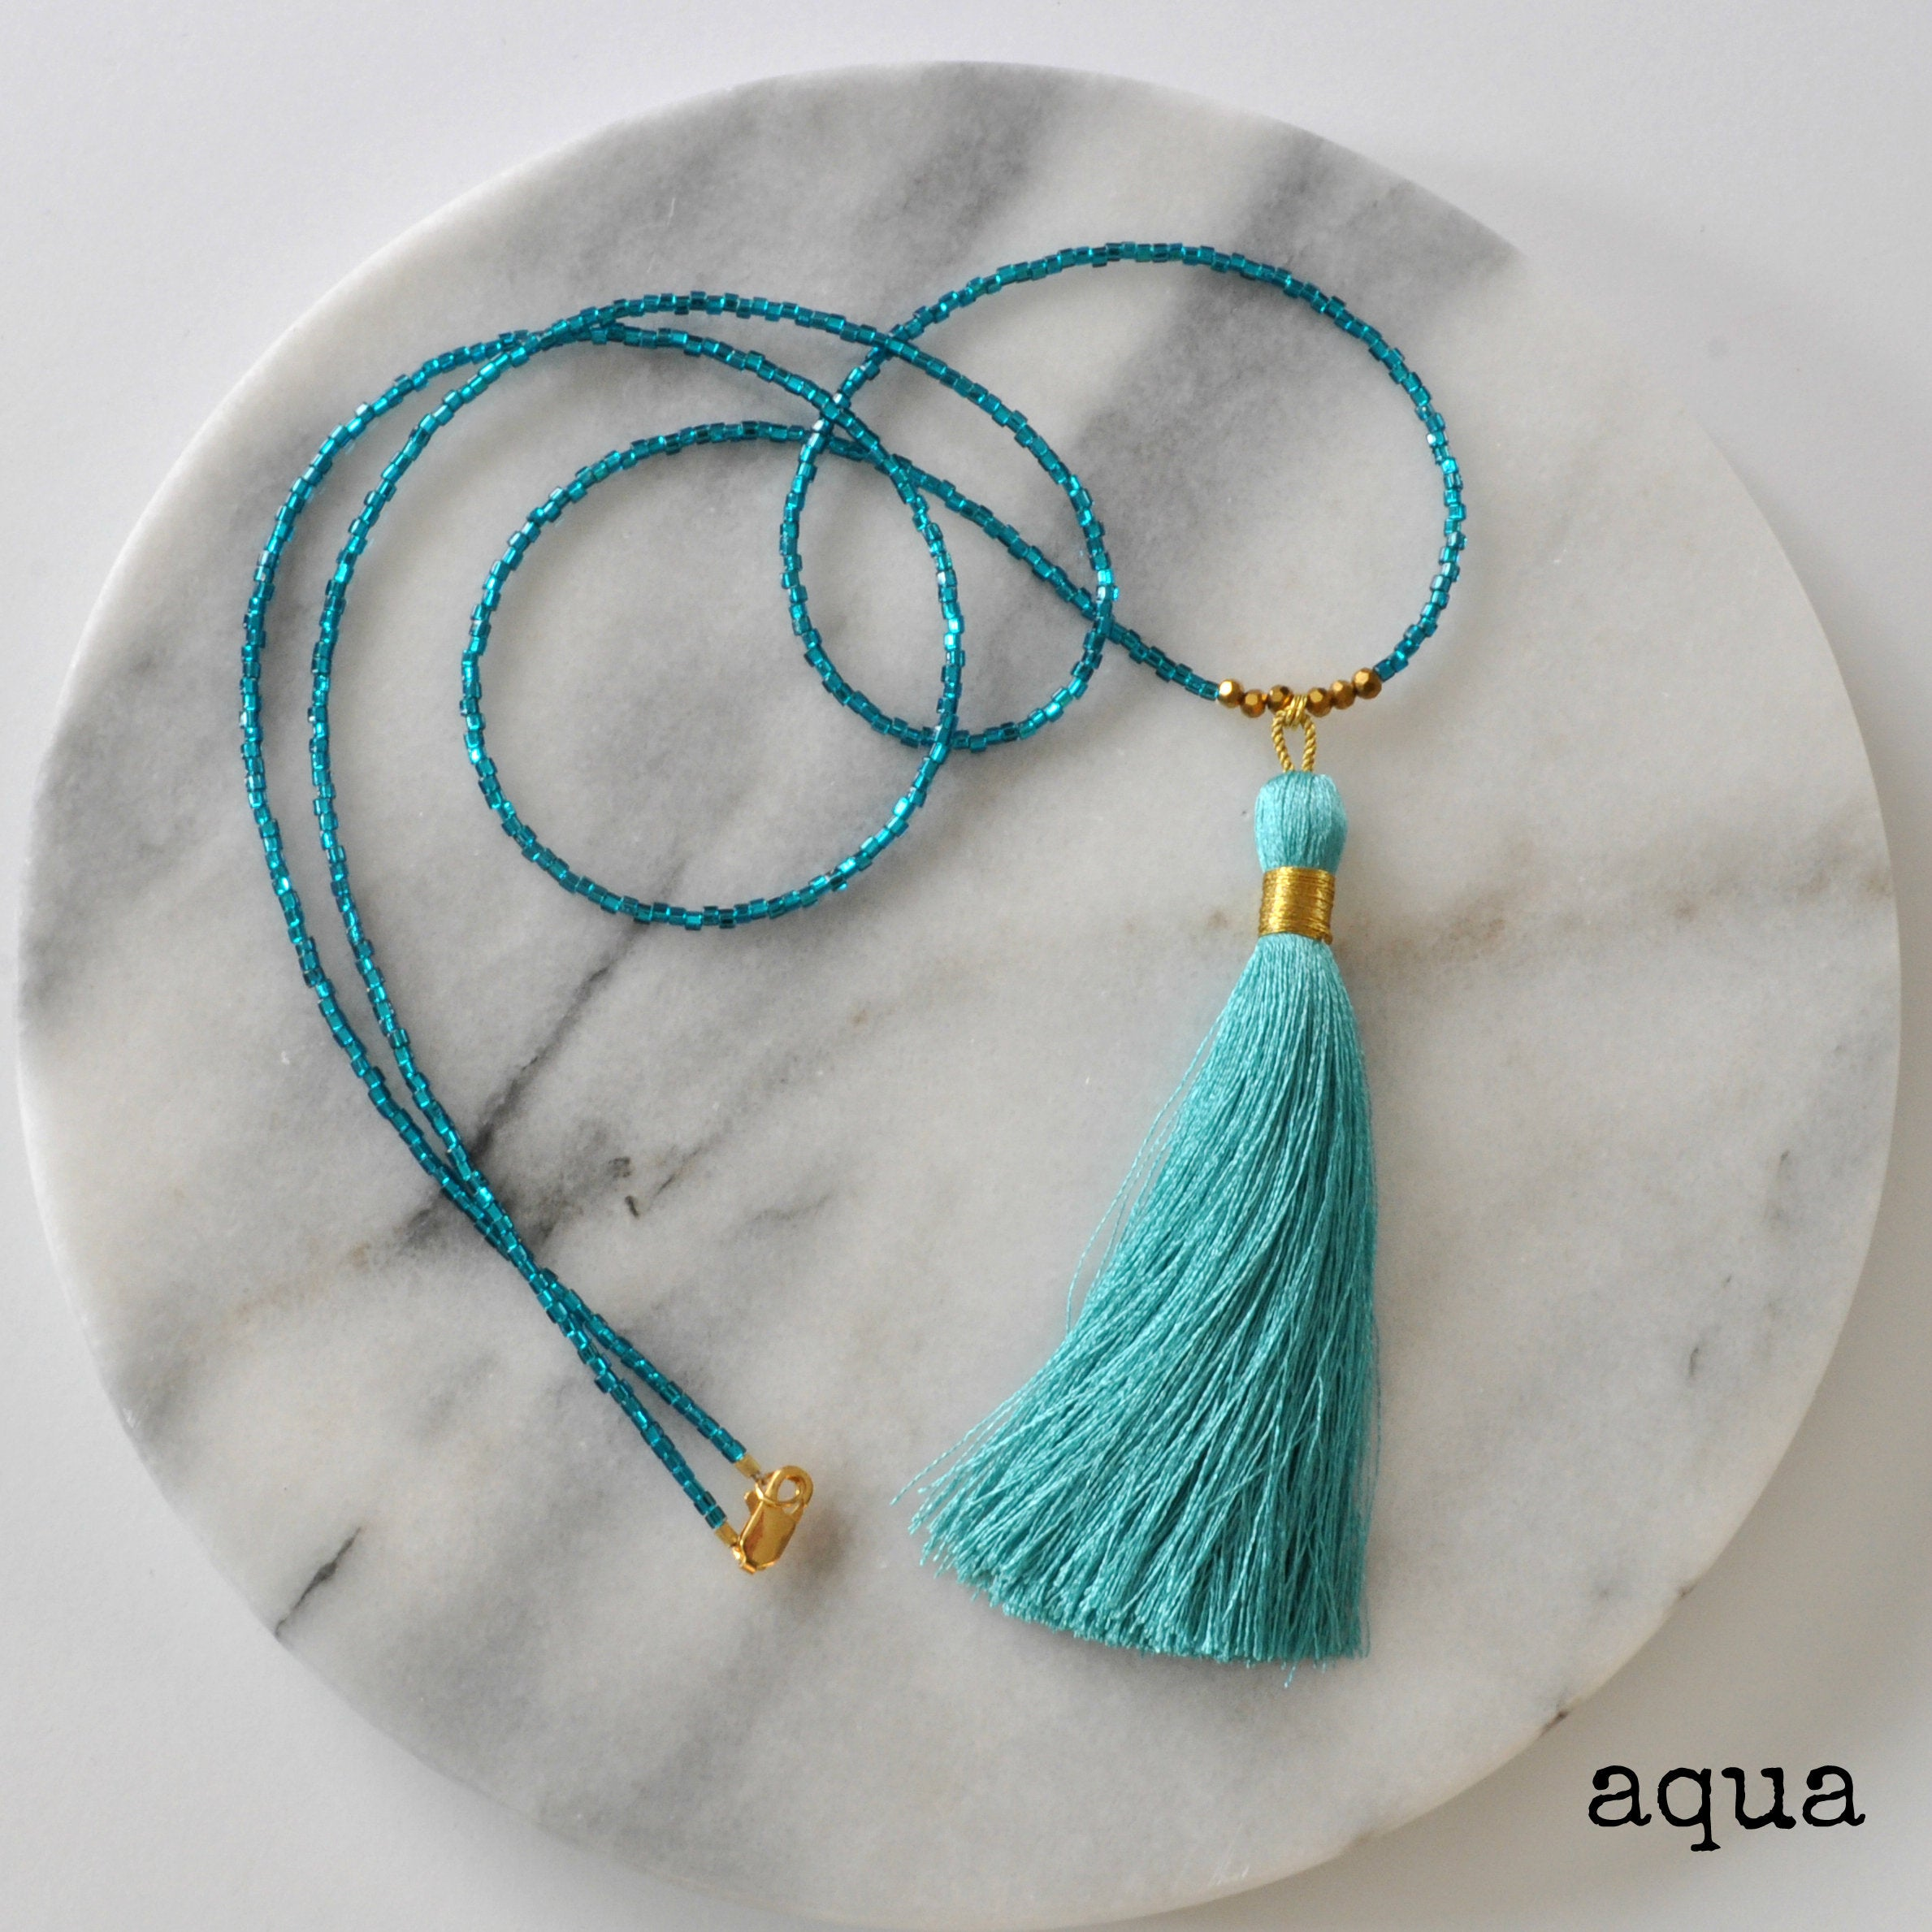 Libby & Smee Beaded Tassel Necklace in Aqua, still life labeled